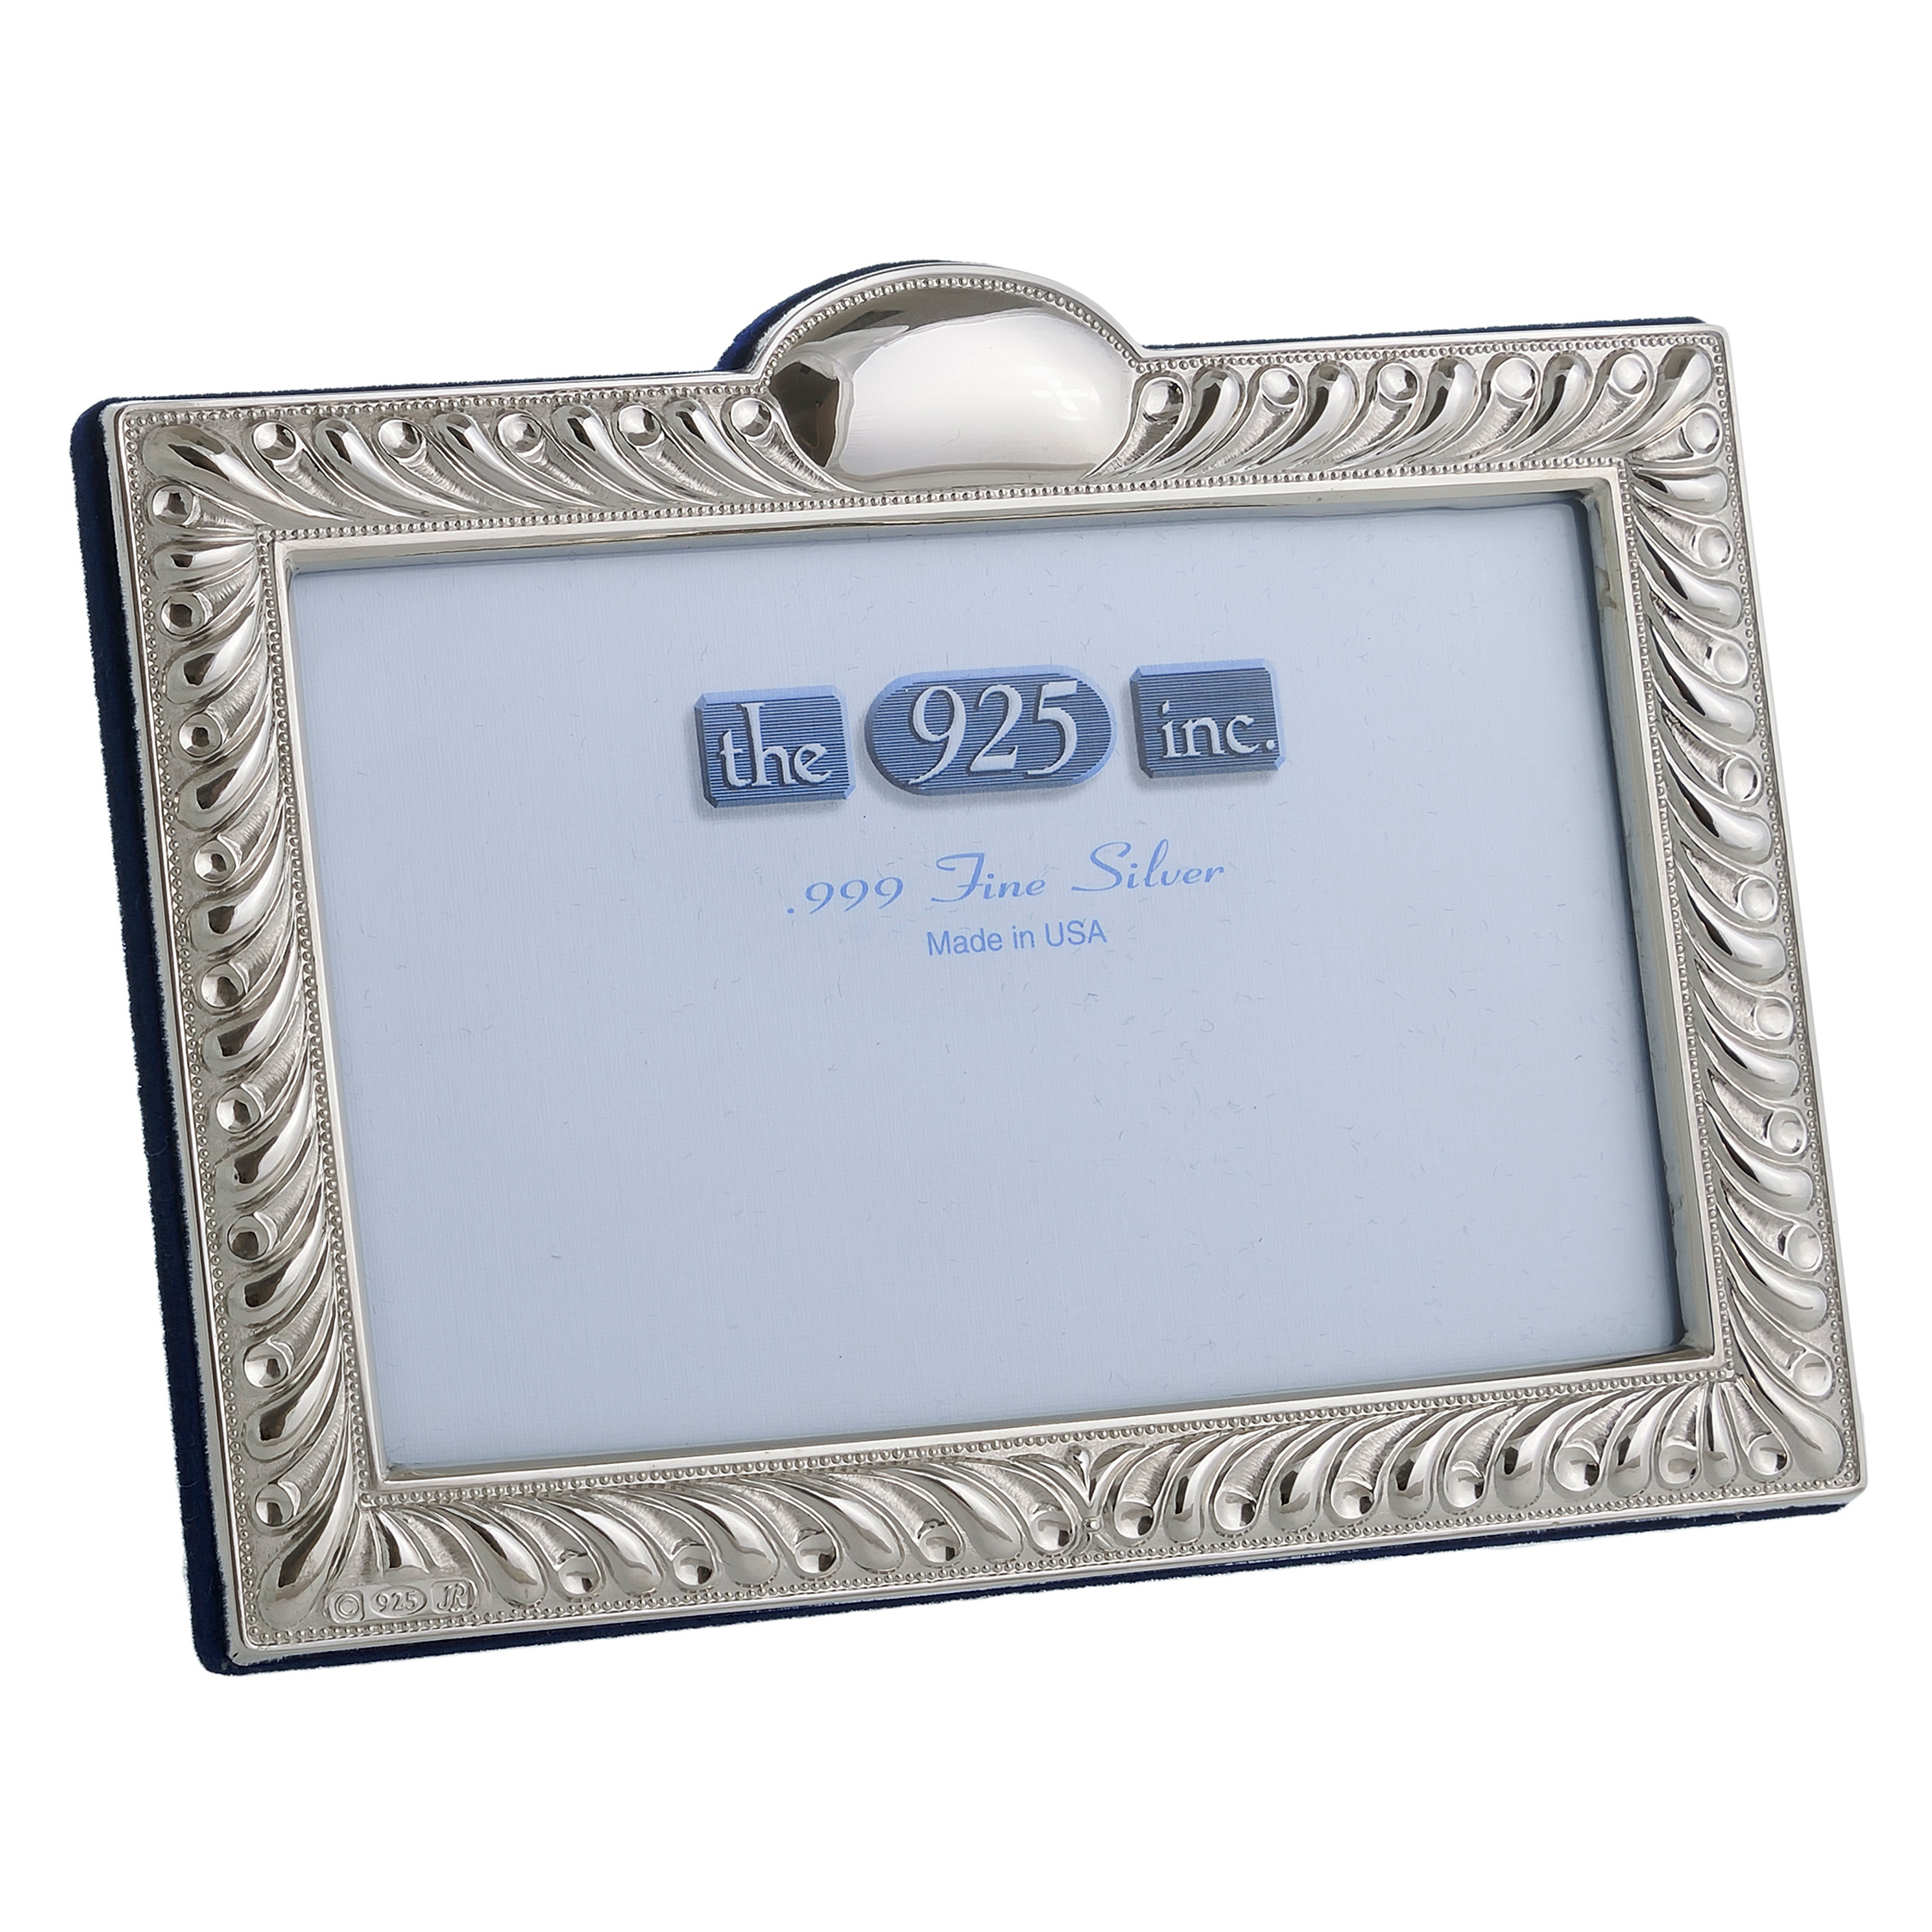 #216 Gadroon Silver Frame Image